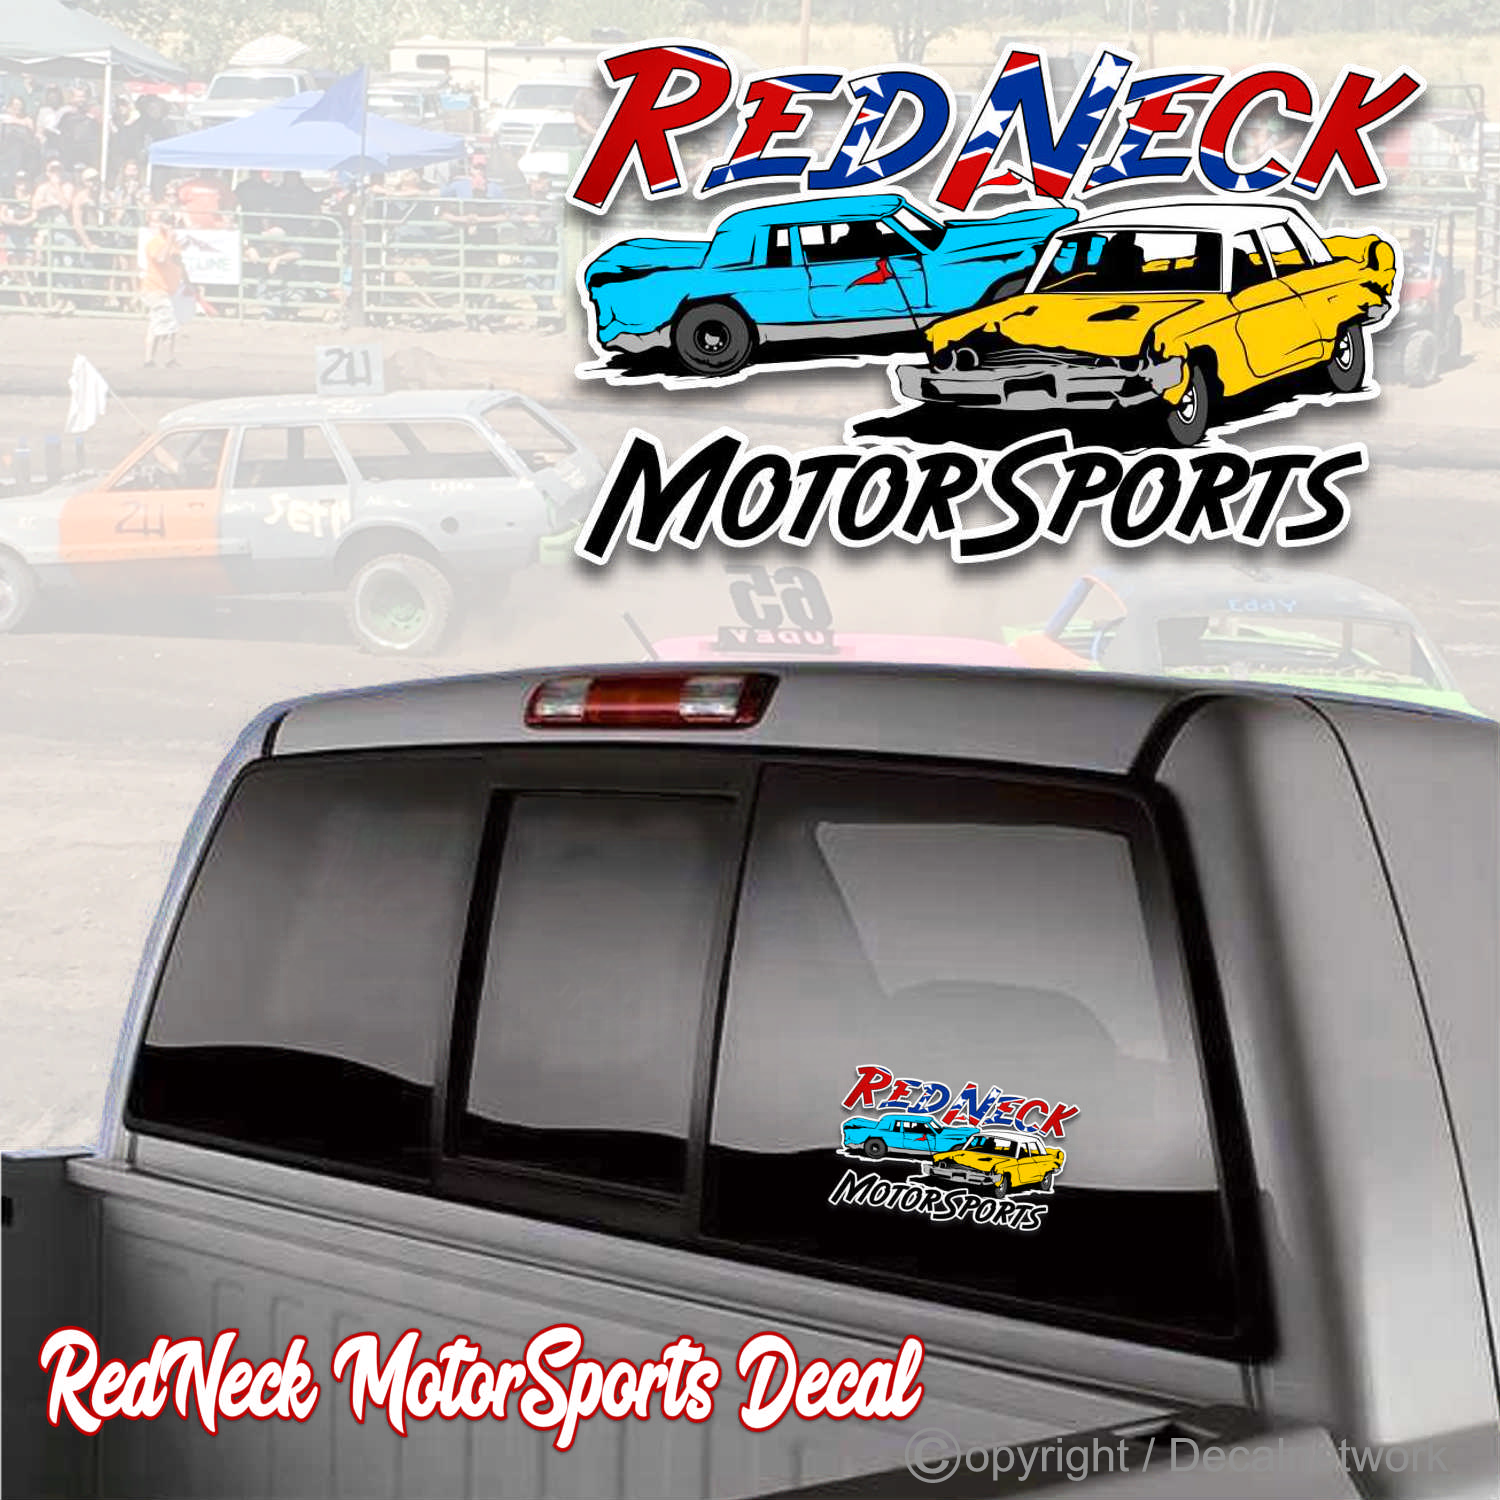 redneck motorsports demo derby vinyl decal rebel flag